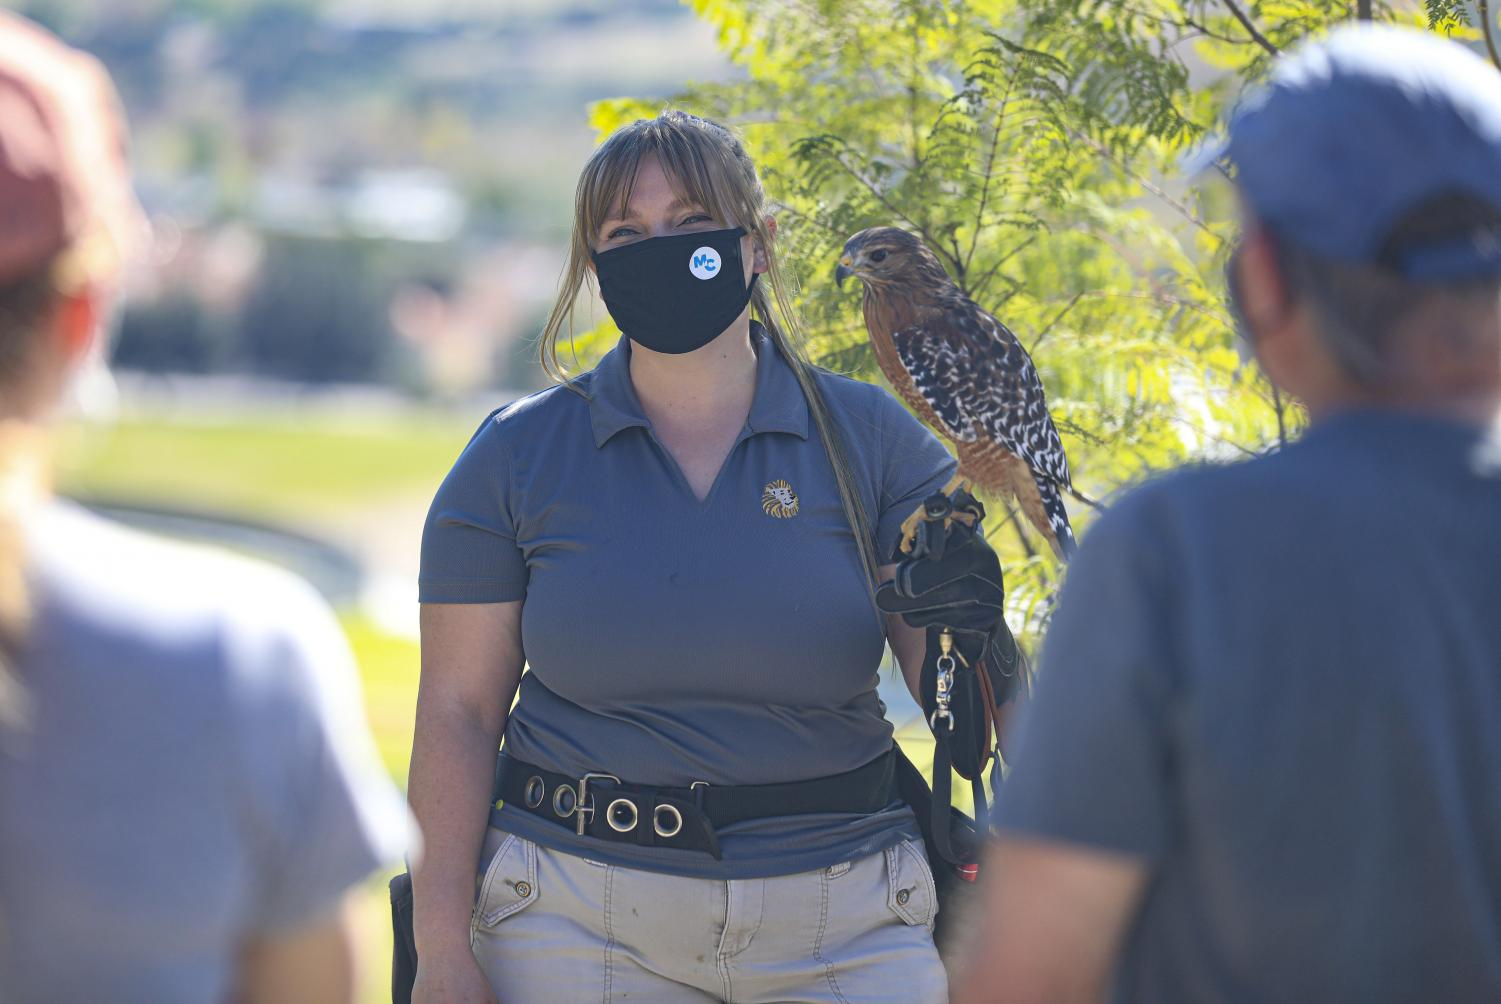 Kristina Ruiz, a second year EATM student, showcases Cheyenee a red-shouldered hawk to visitors at America's Teaching Zoo in Moorpark, CA on Saturday, Feb. 6, 2021.